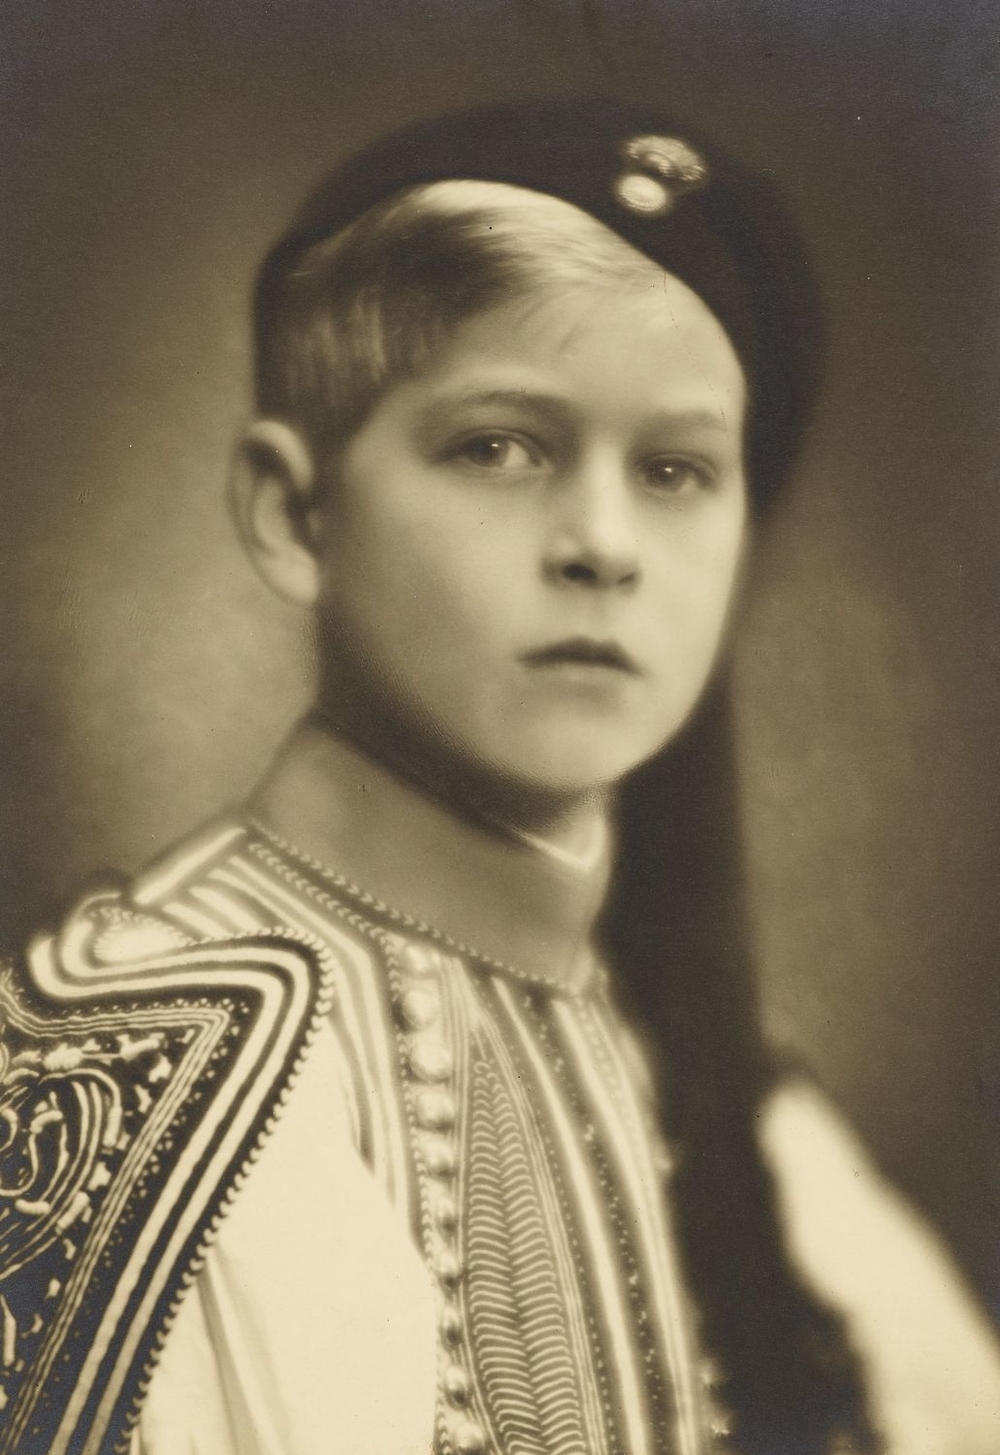 Photograph of a head and shoulders length portrait of Prince Philip of Greece, later HRH The Duke of Edinburgh, facing the viewer. He wears traditional Greek costume and hat.